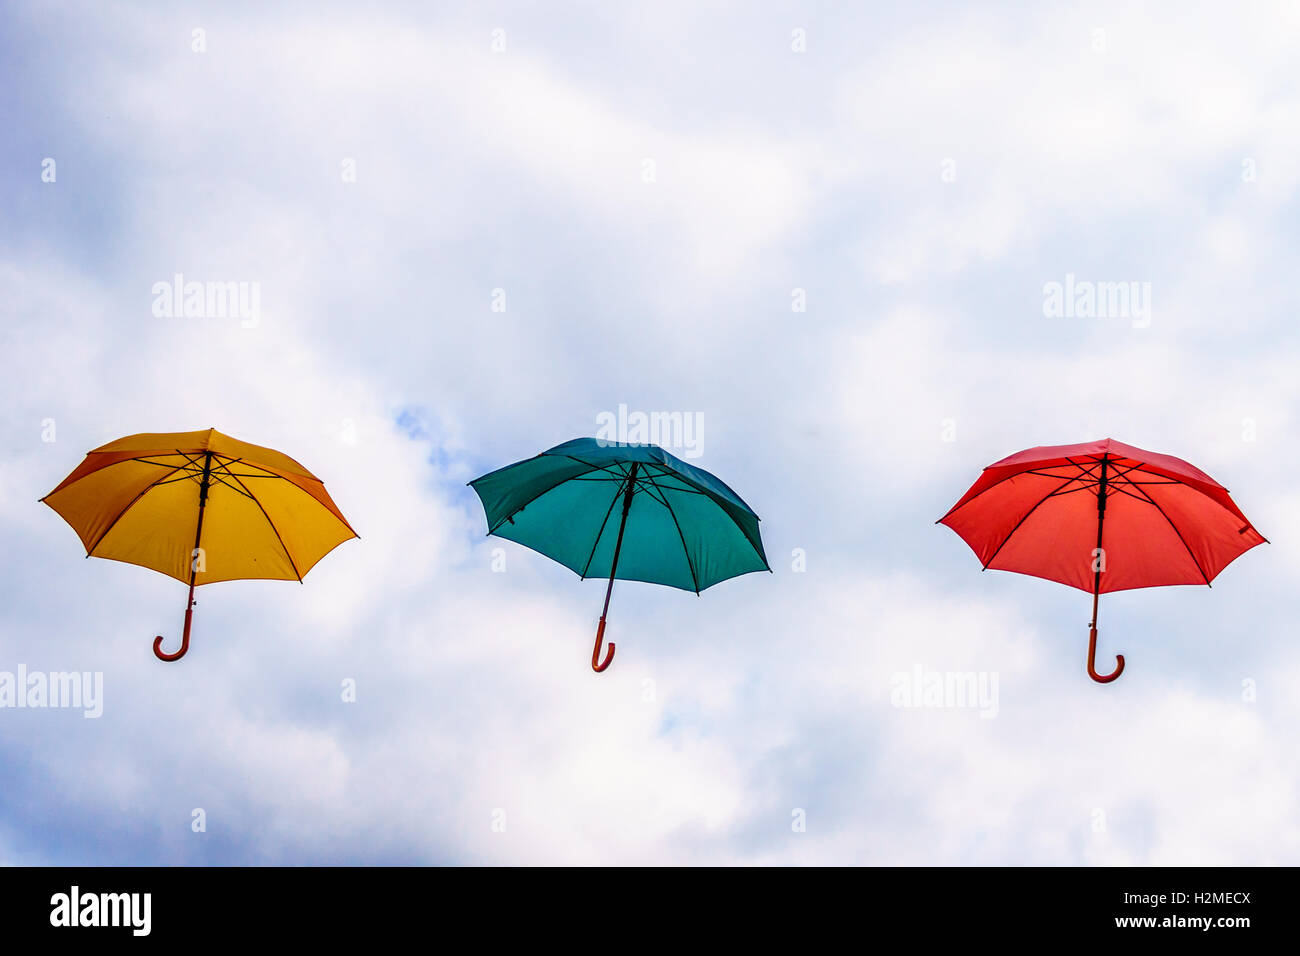 Yellow Umbrella, Green Umbrella, Red Umbrella floating in the Air under Partly Blue Sky with cloudy periods. - Stock Image